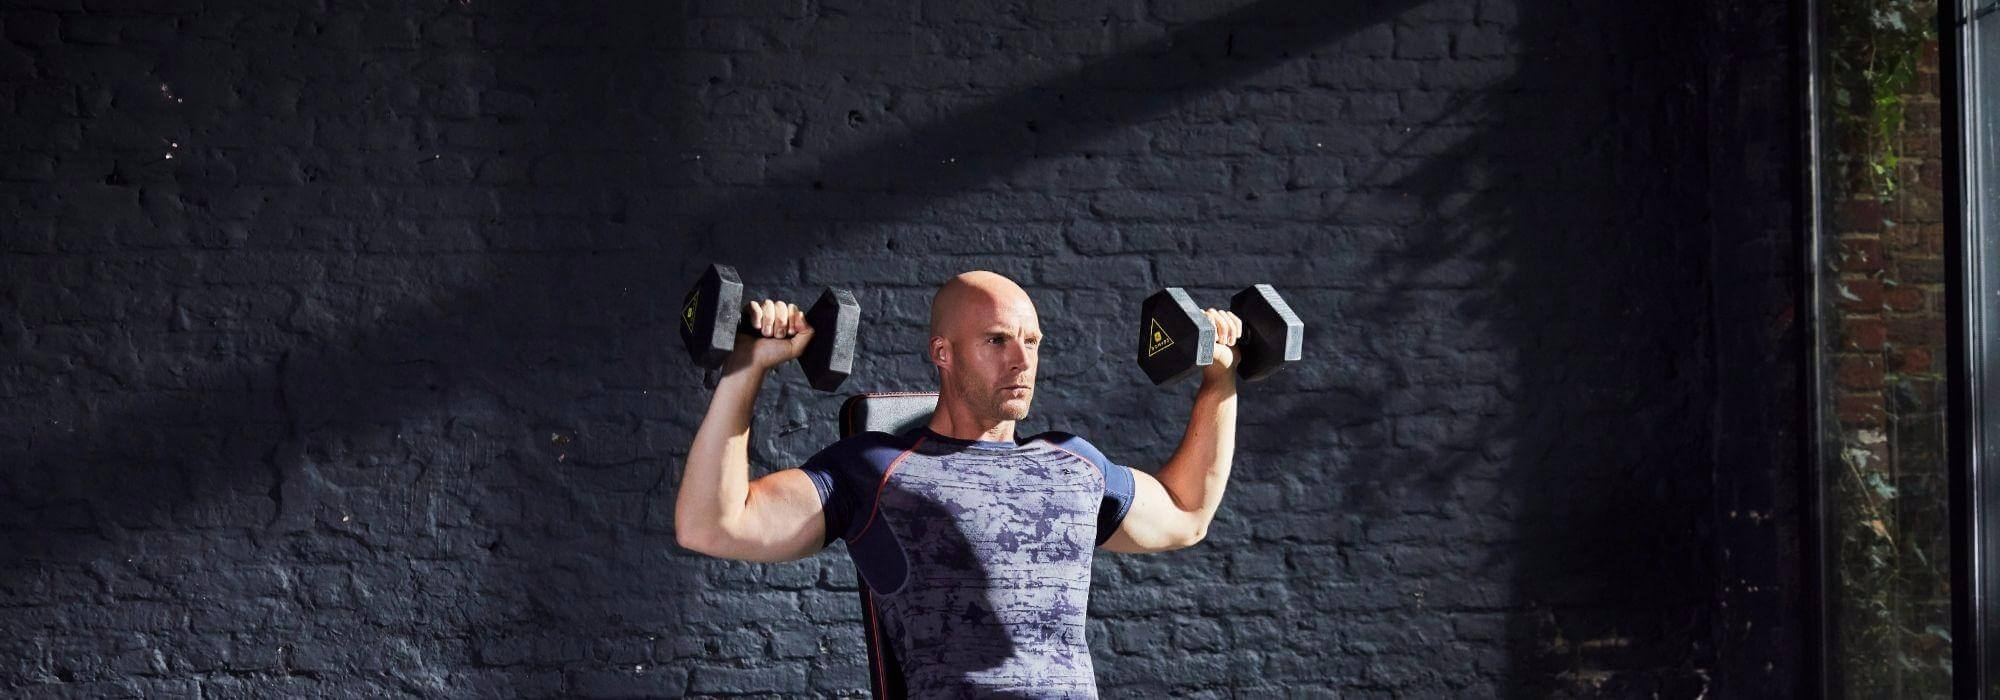 Learn How to do Bench Press to Increase Strength in 5 Steps